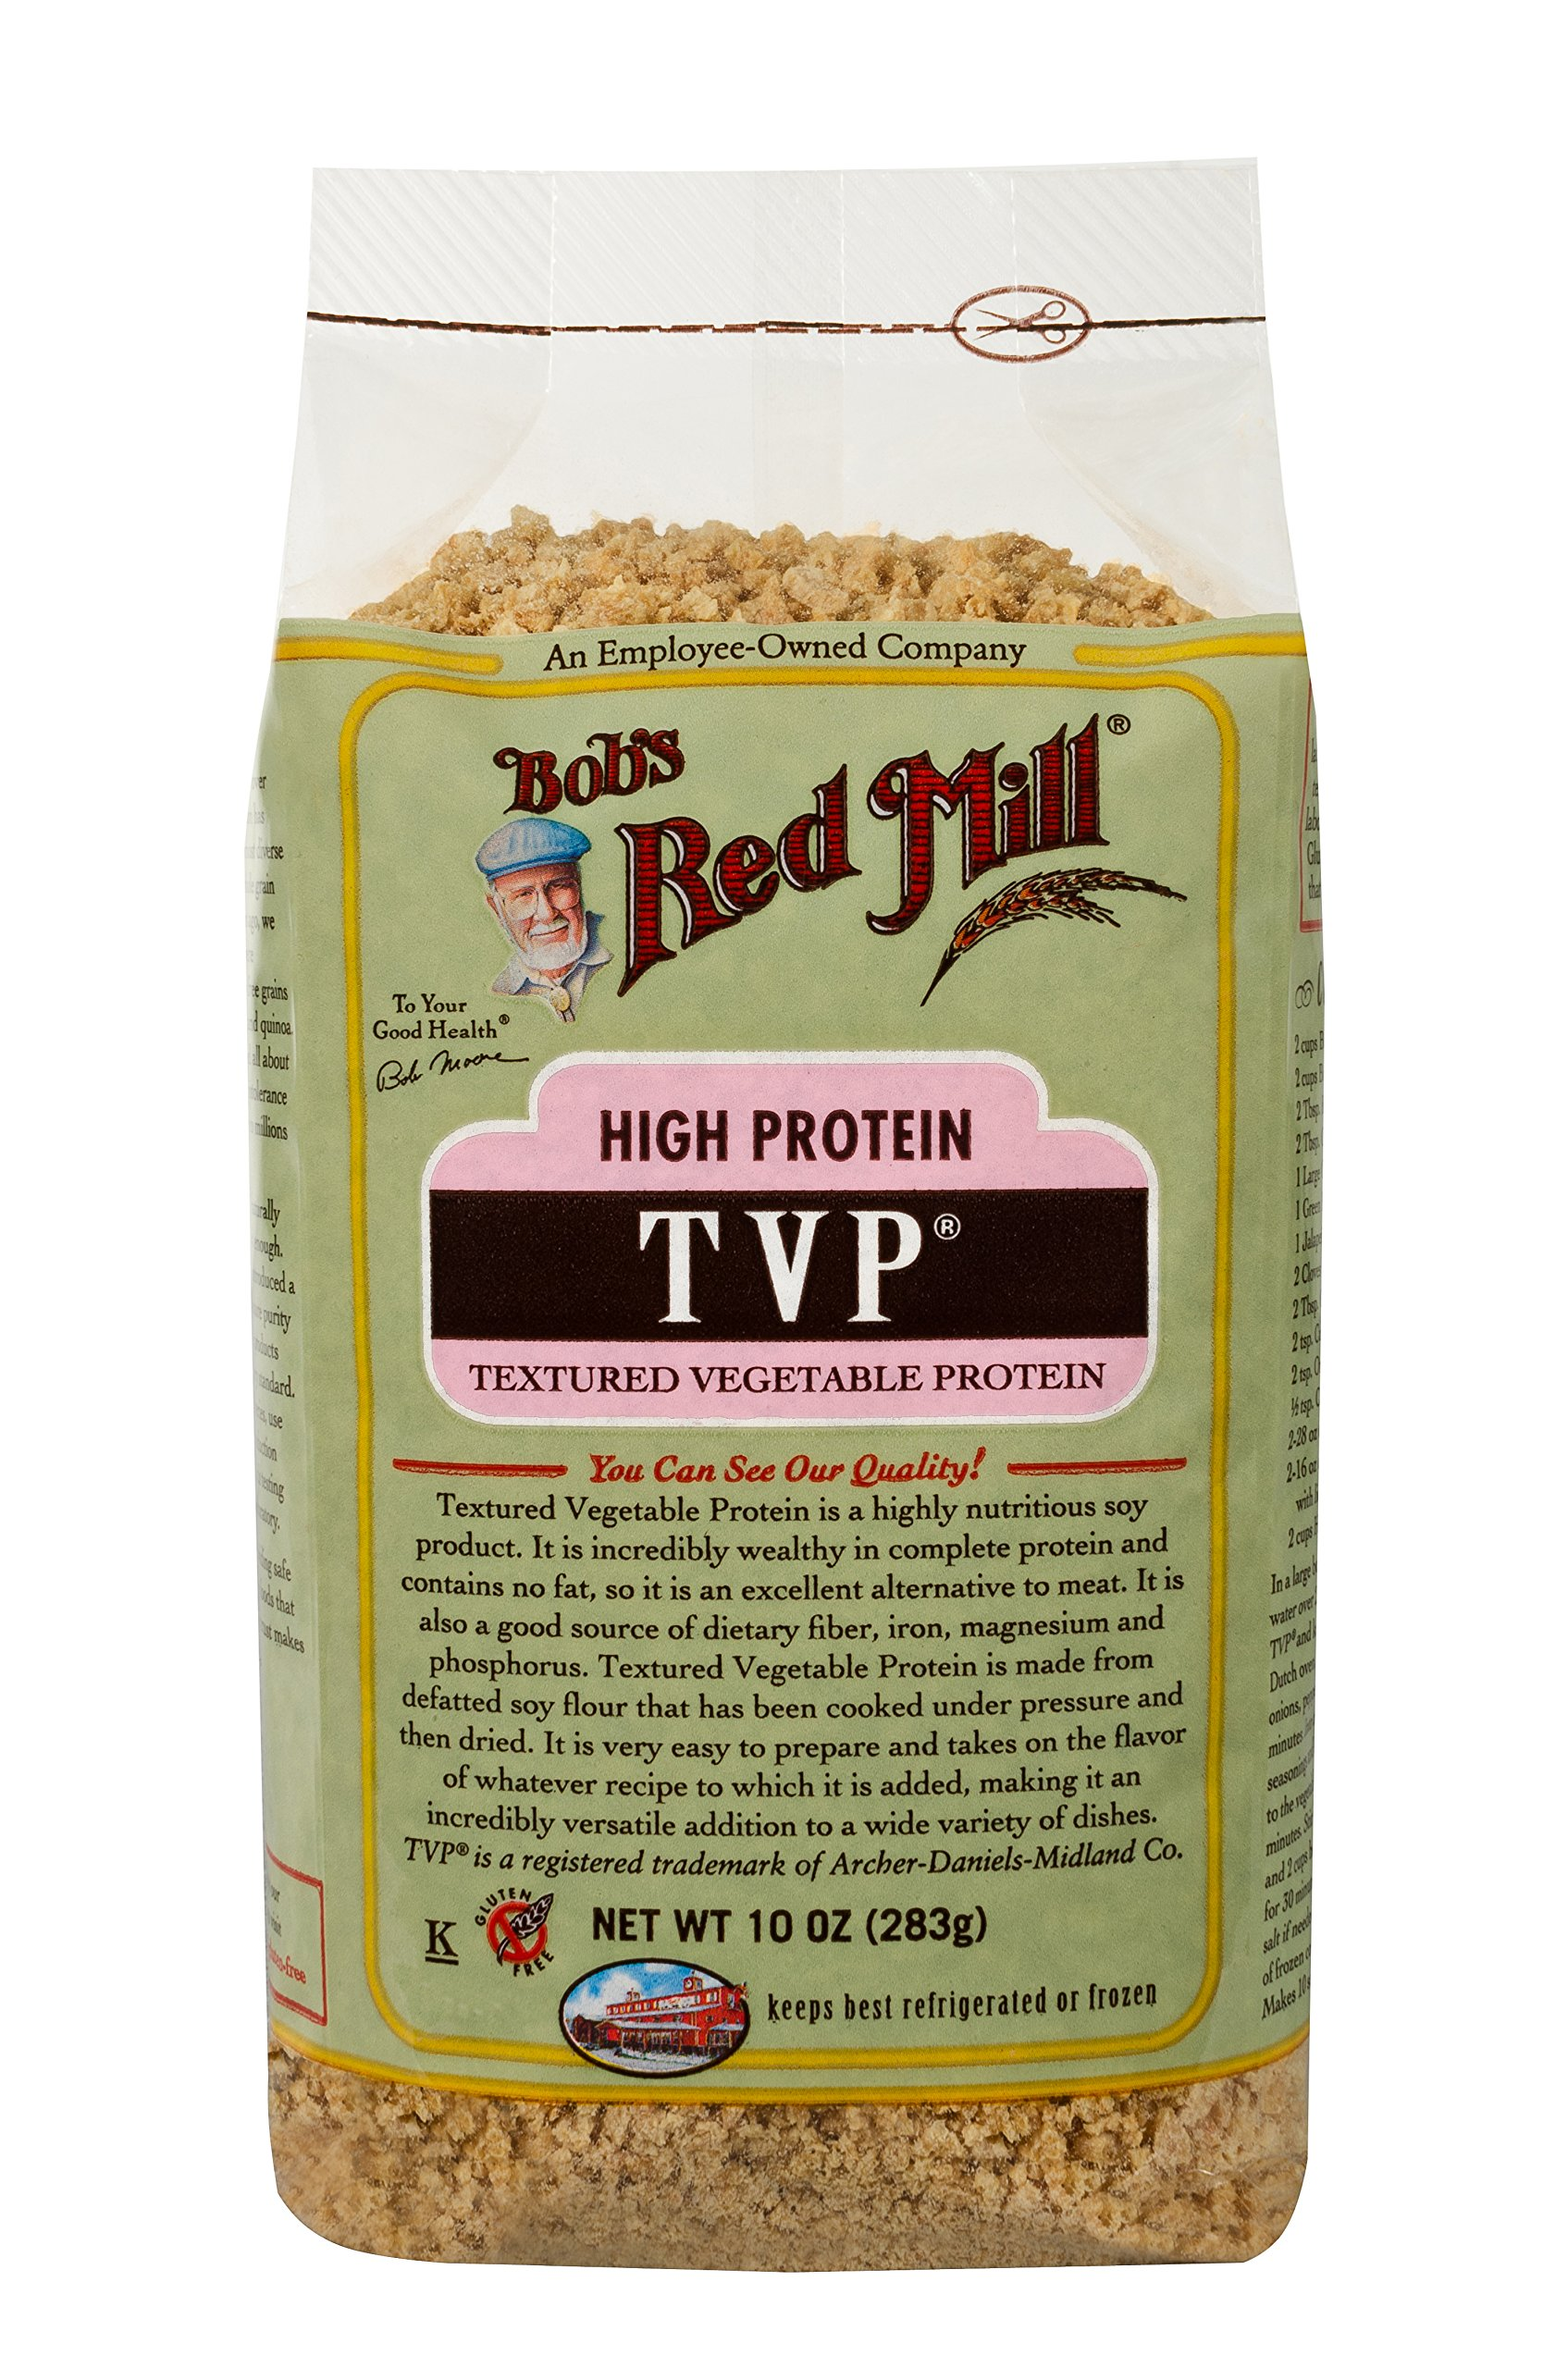 Bob's Red Mill, Texturized Vegetable Protein, 10 oz by Bob's Red Mill (Image #7)